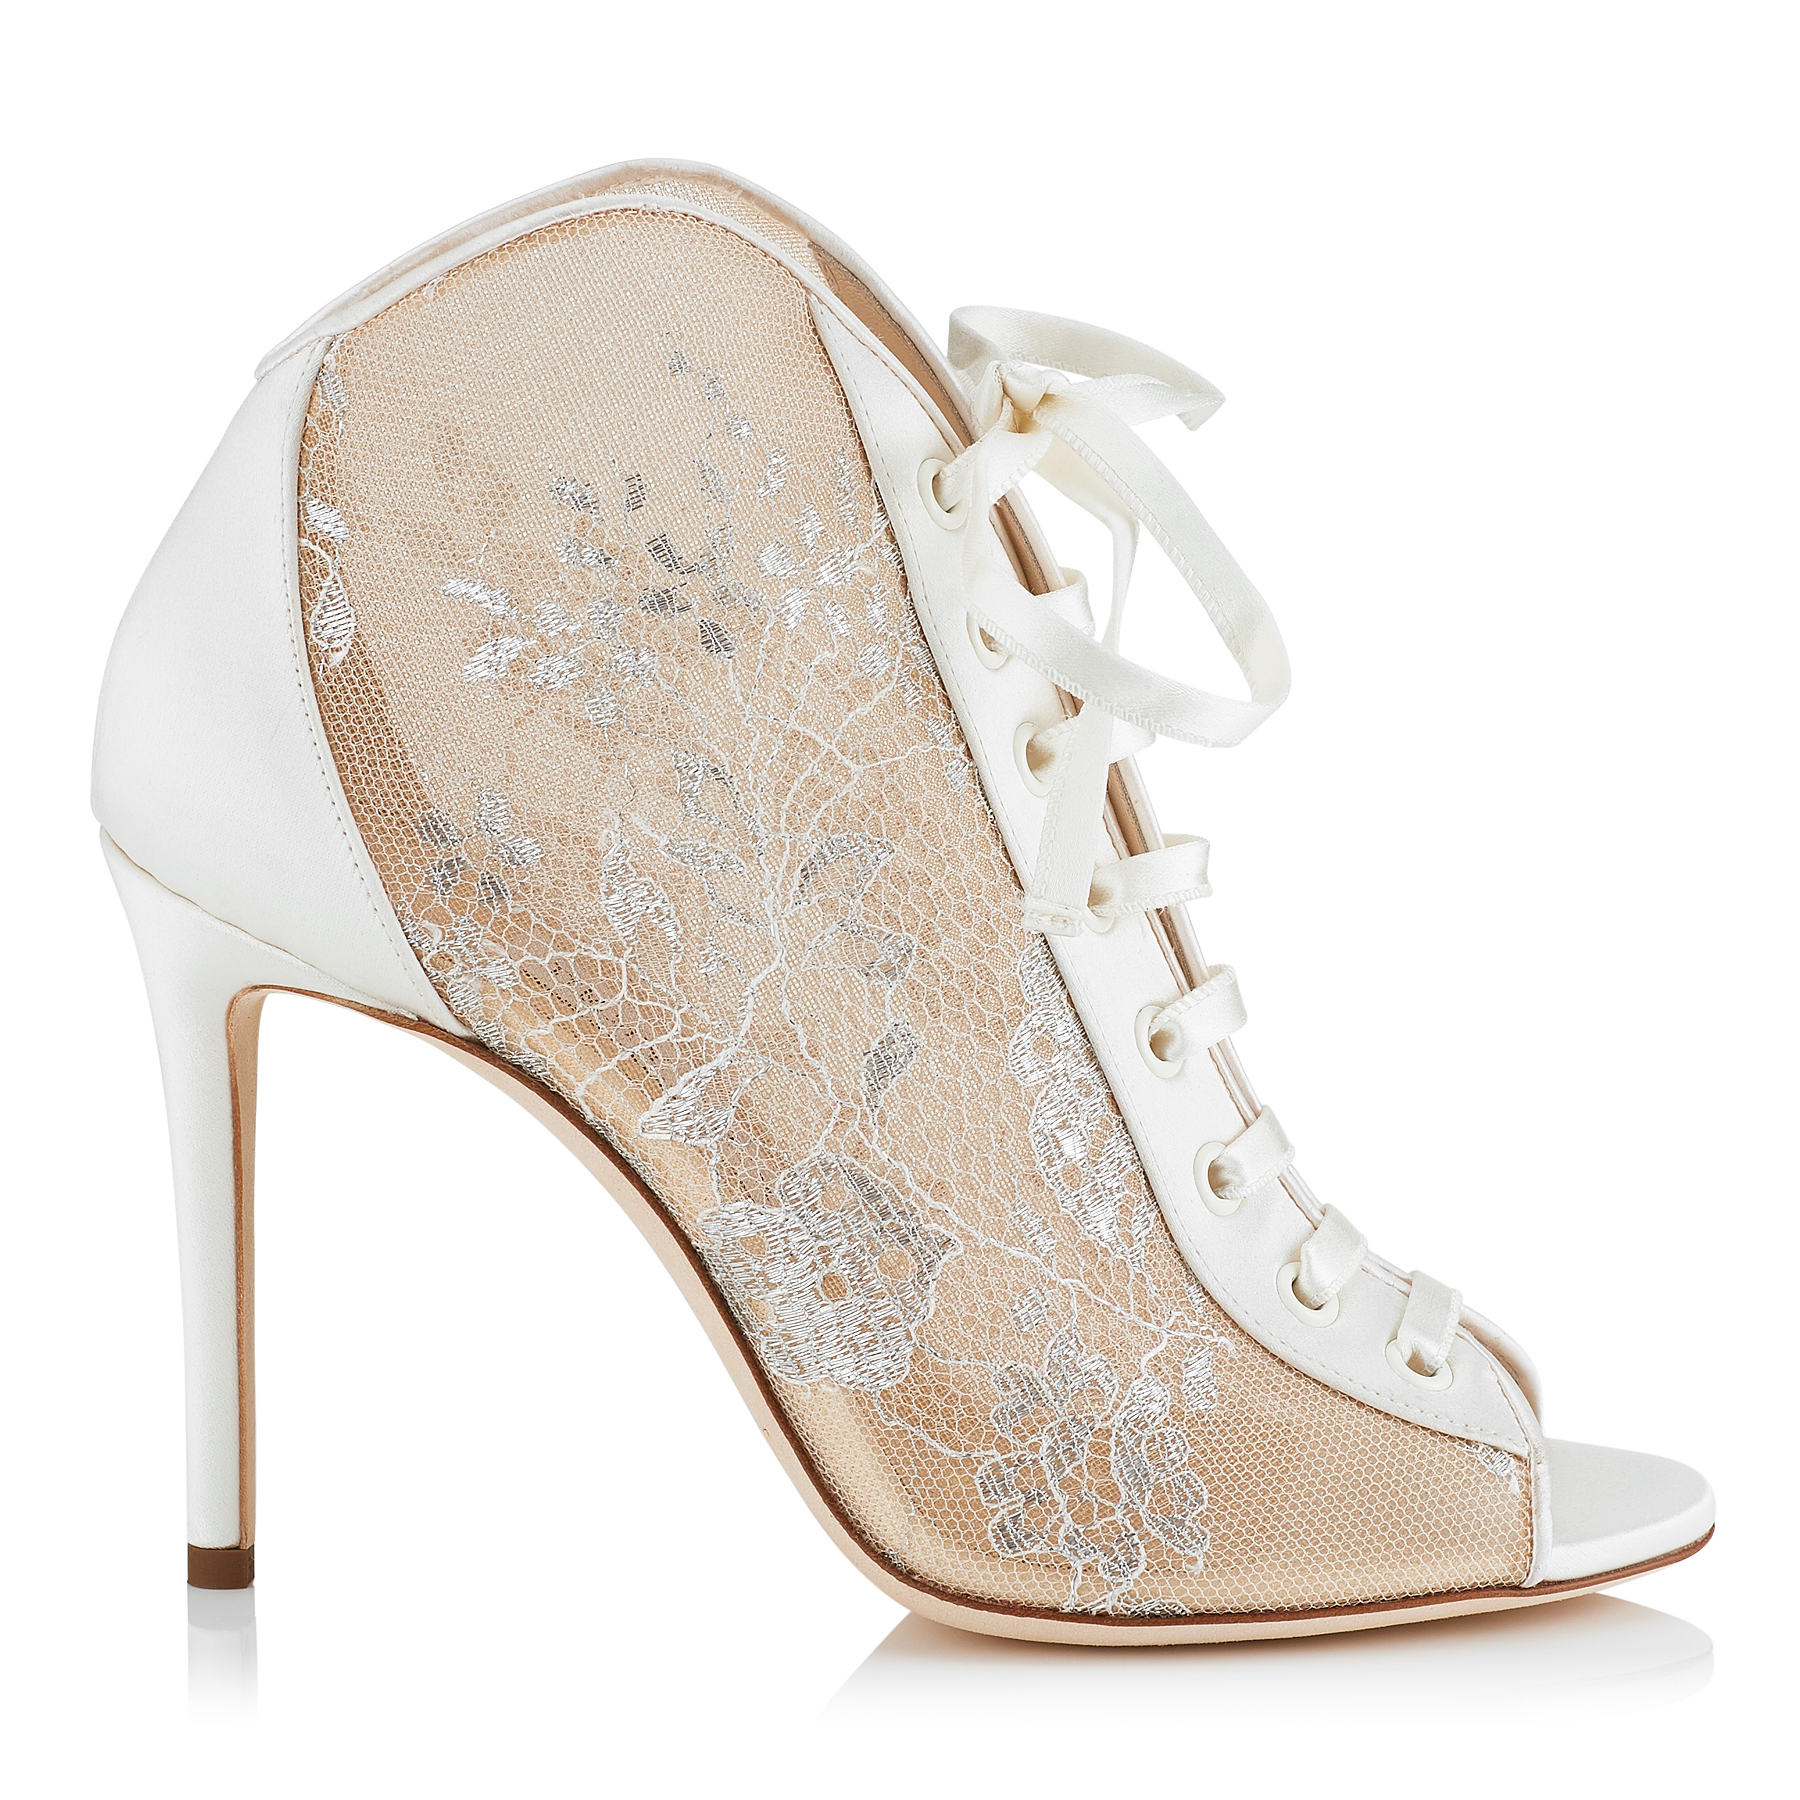 734ad5002 FREYA 100 White Lace and Satin Ivory Peep Toe Booties by Jimmy Choo ...